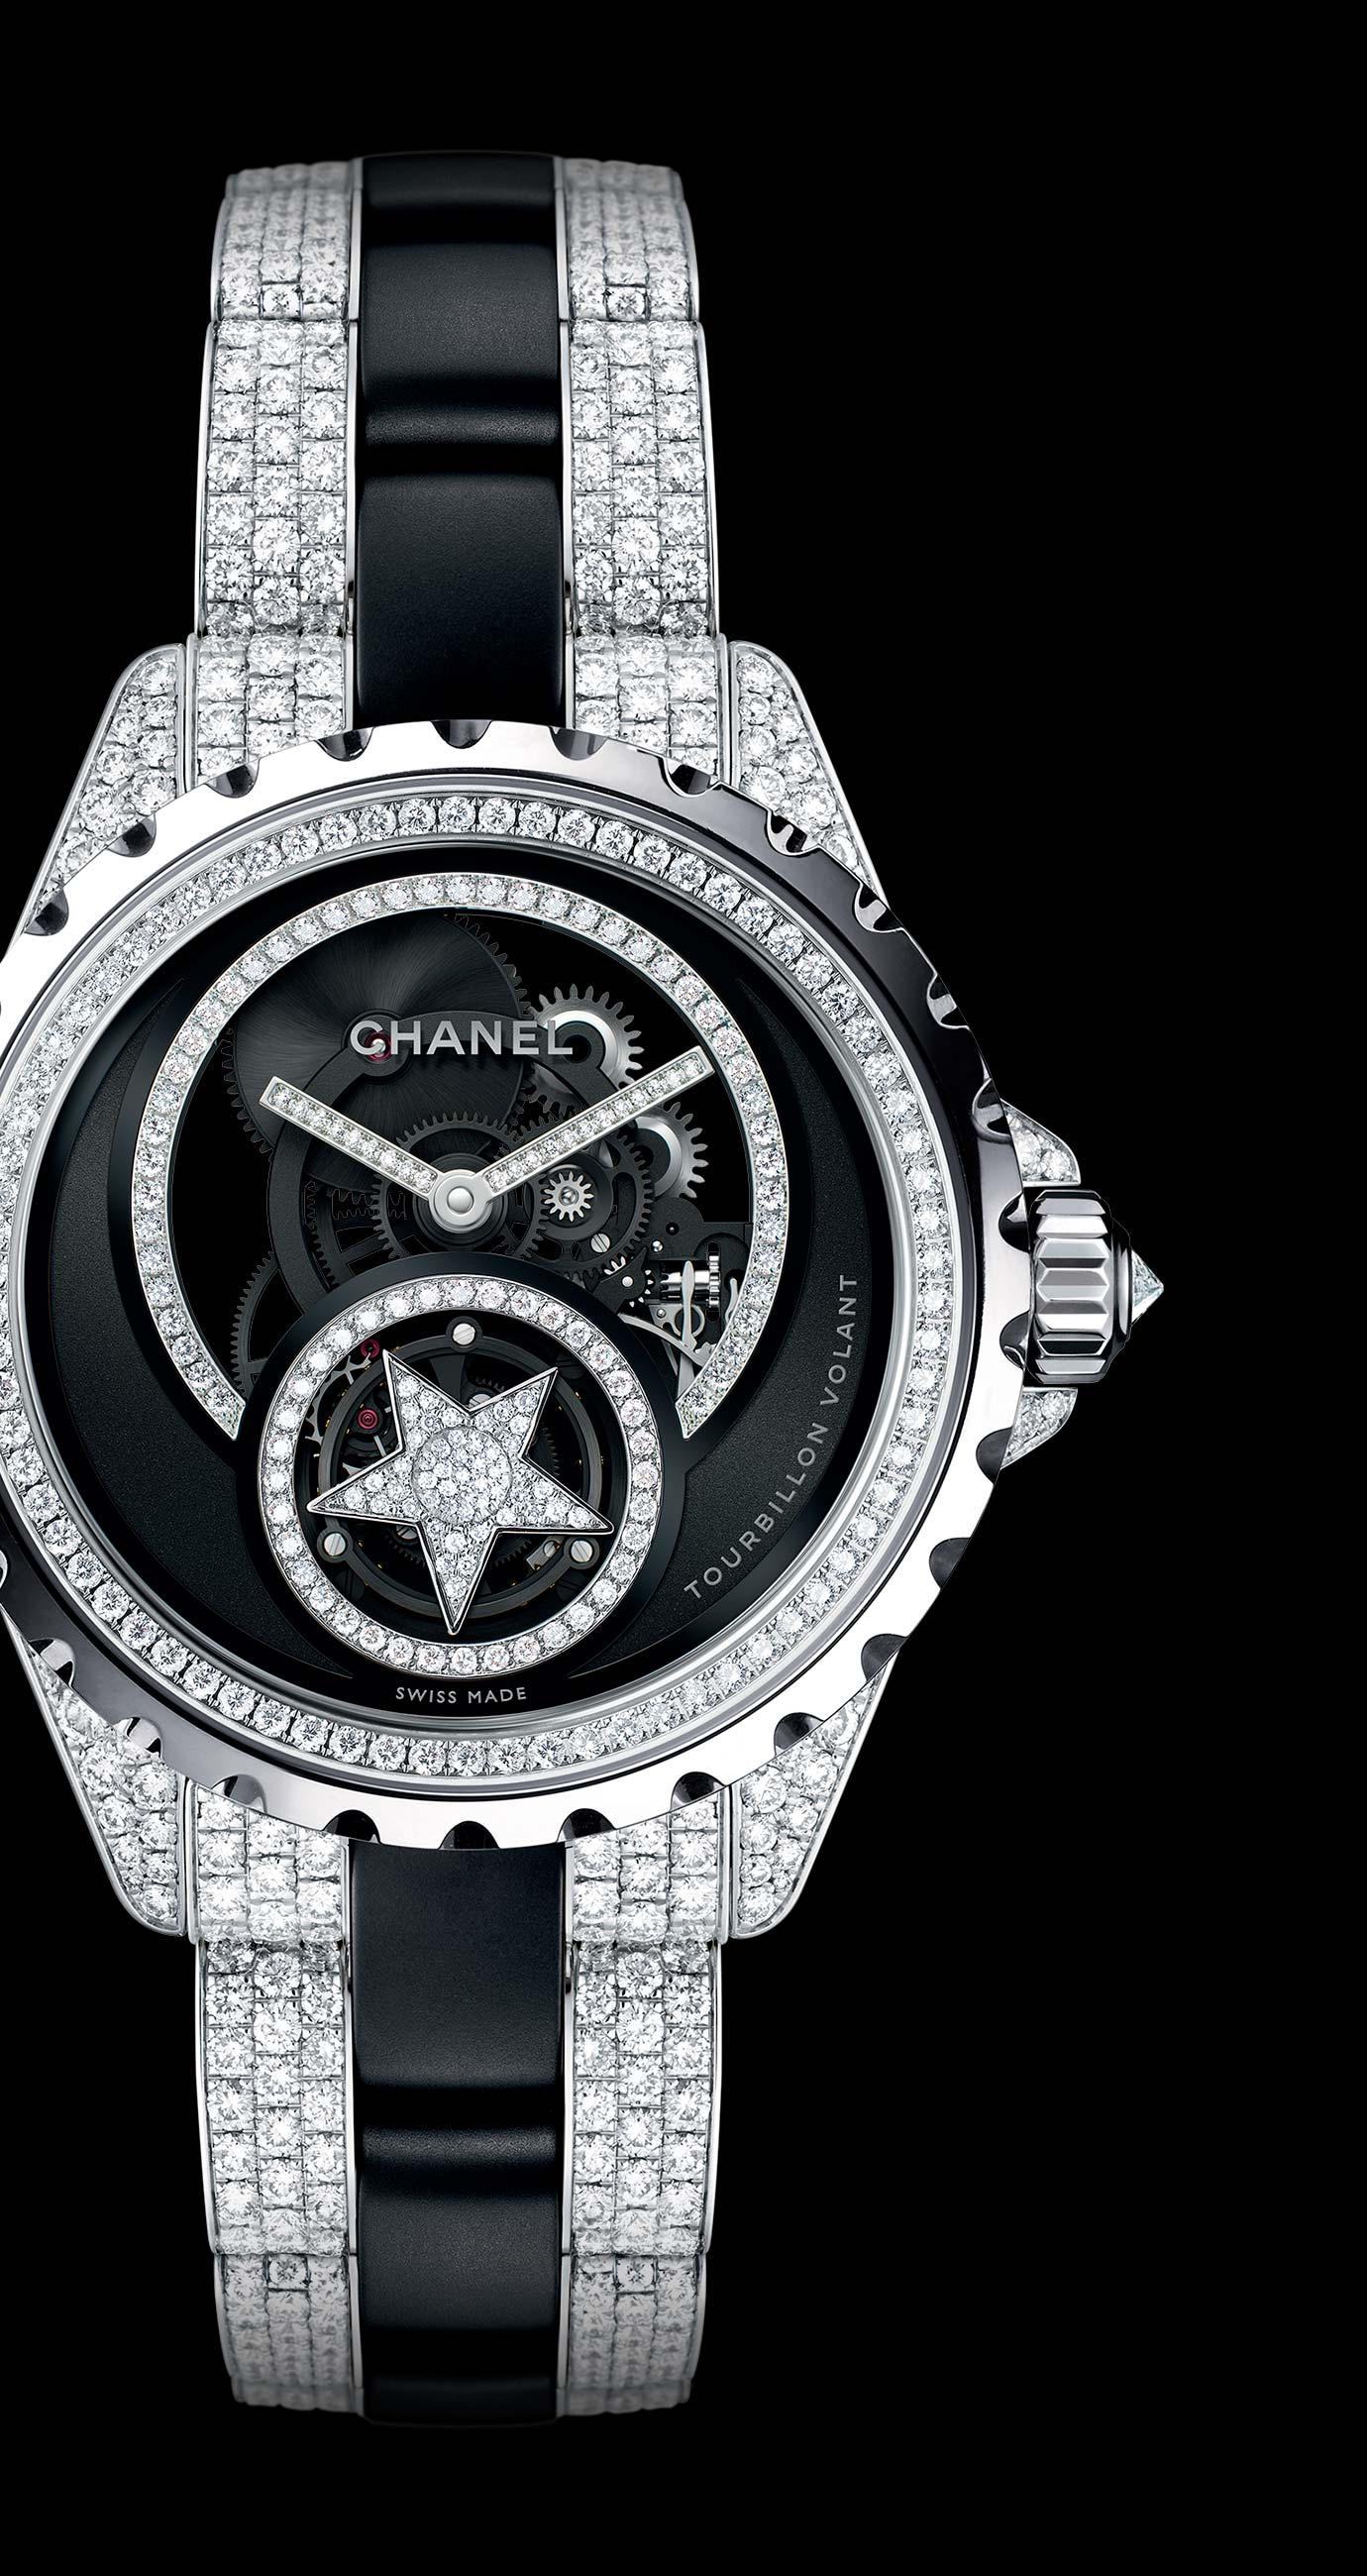 J12 Tourbillon Volant Squelette  en or blanc 18 carats et céramique high-tech* noire serties de diamants. Bracelet serti de diamants taille brillant. - Vue agrandie